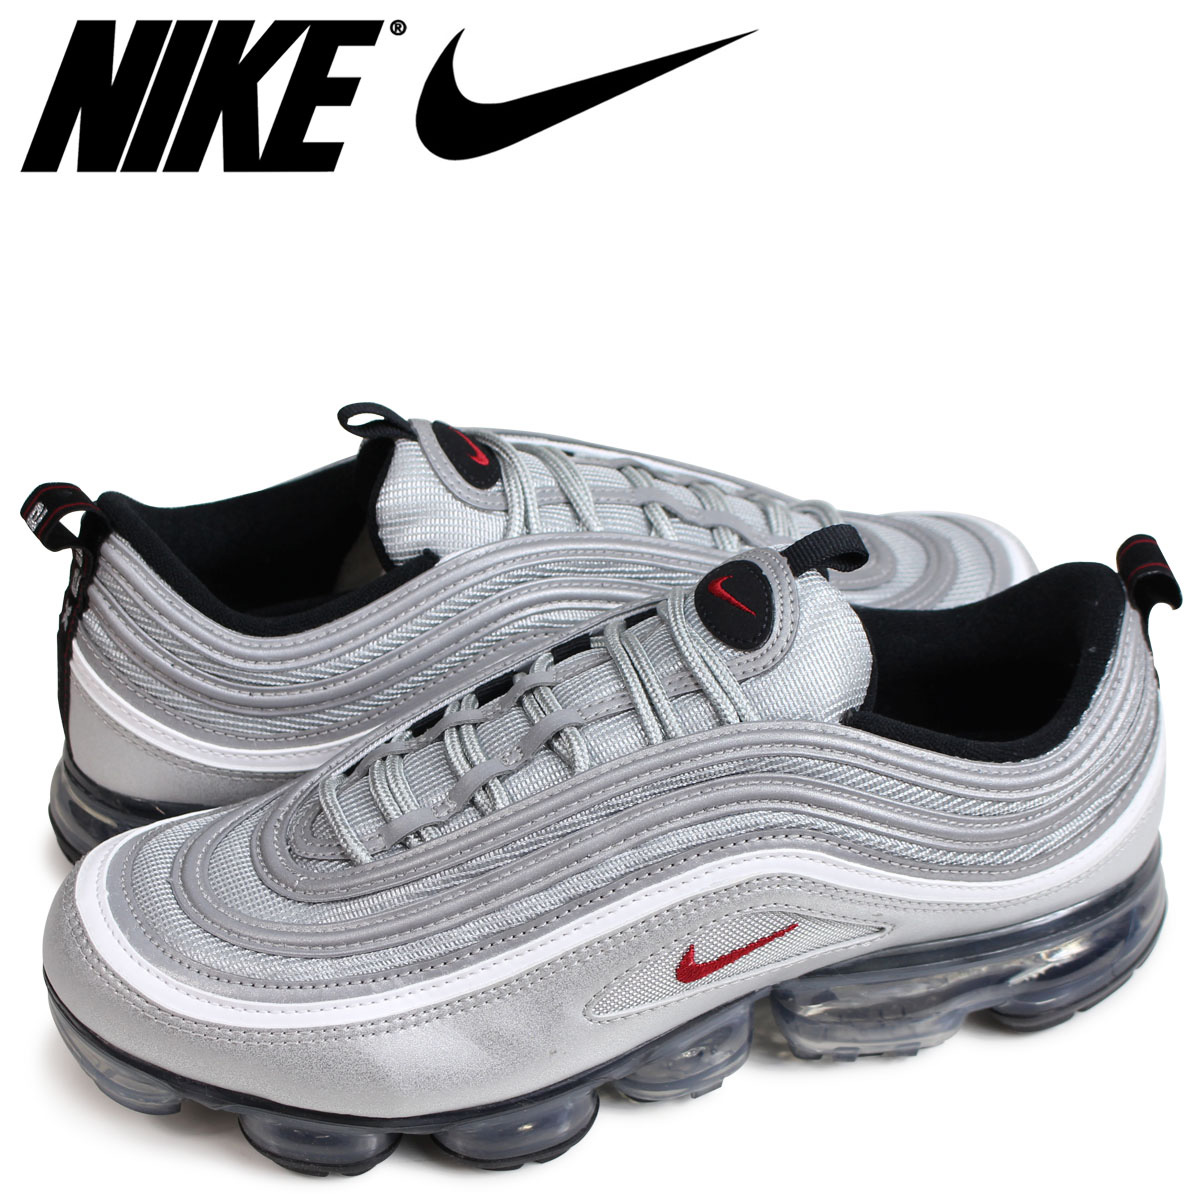 finest selection 3f5c0 091ca NIKE AIR VAPORMAX 97 Nike air vapor max 97 sneakers men silver AJ7291-002